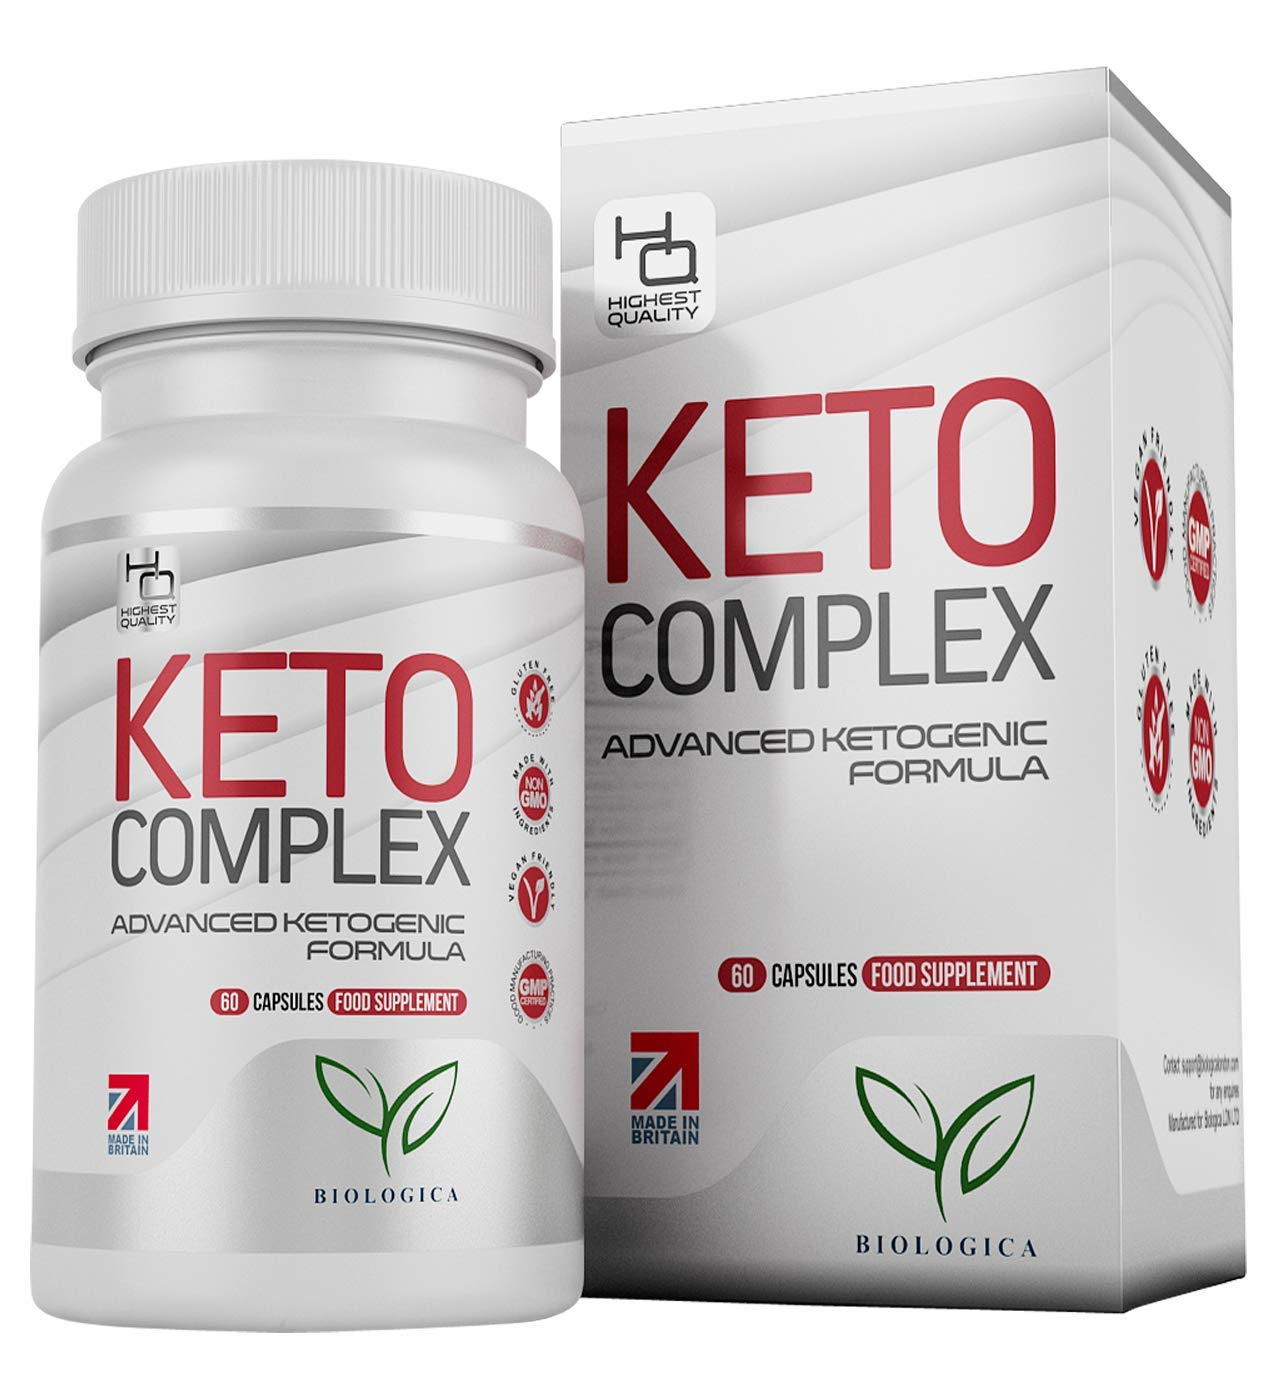 Keto Diet Pills for Men & Women | Natural Green Tea, Green Coffee + Raspberry Fruit Extract for Optimal Weight Management | 1 Months Supply - 60 Tablets | Recipe eBook Included